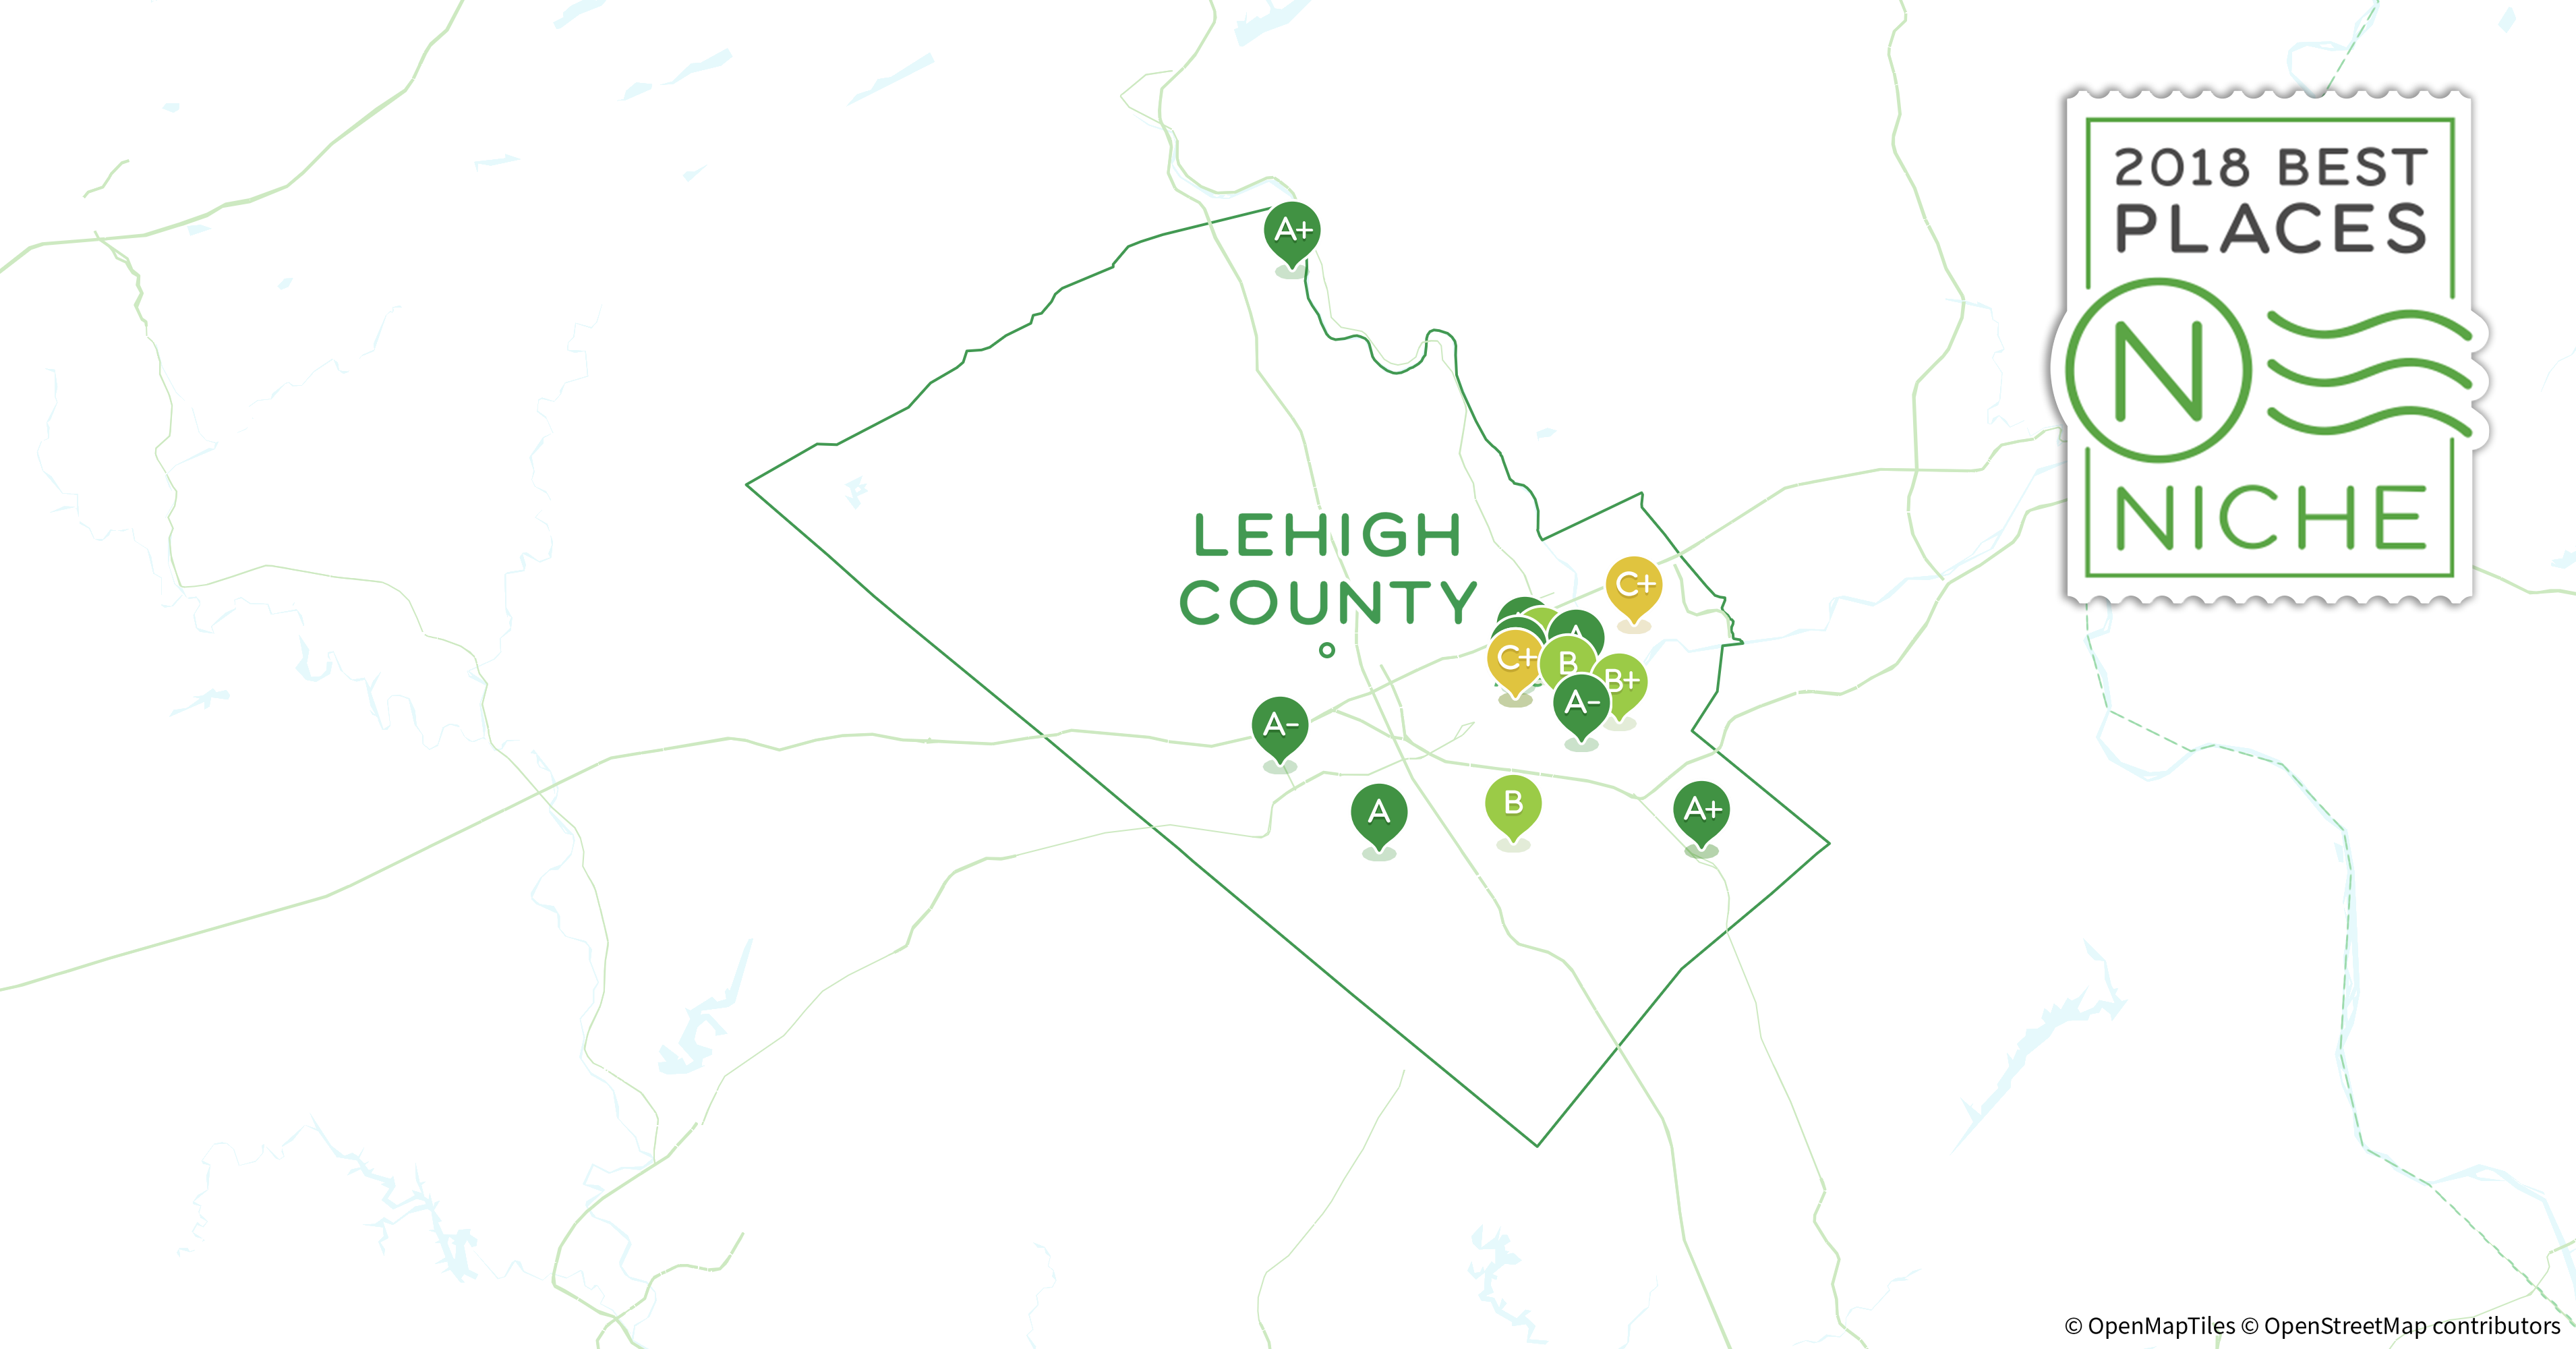 2018 Safest Places to Live in Lehigh County, PA - Niche on district township pa map, schuylkill haven pa map, center valley pa map, bucks co pa map, saucon valley pa map, red land pa map, schuylkill river pa map, lehigh pennsylvania map, lehigh station pa, lehigh county street map, allentown map, monocacy creek pa map, lehigh valley pennsylvania, mary d pa map, pottsville pa map, lehigh valley railroad maps, lehigh valley pa counties, slate belt pa map, french creek state park pa map, lehigh and northampton county map,